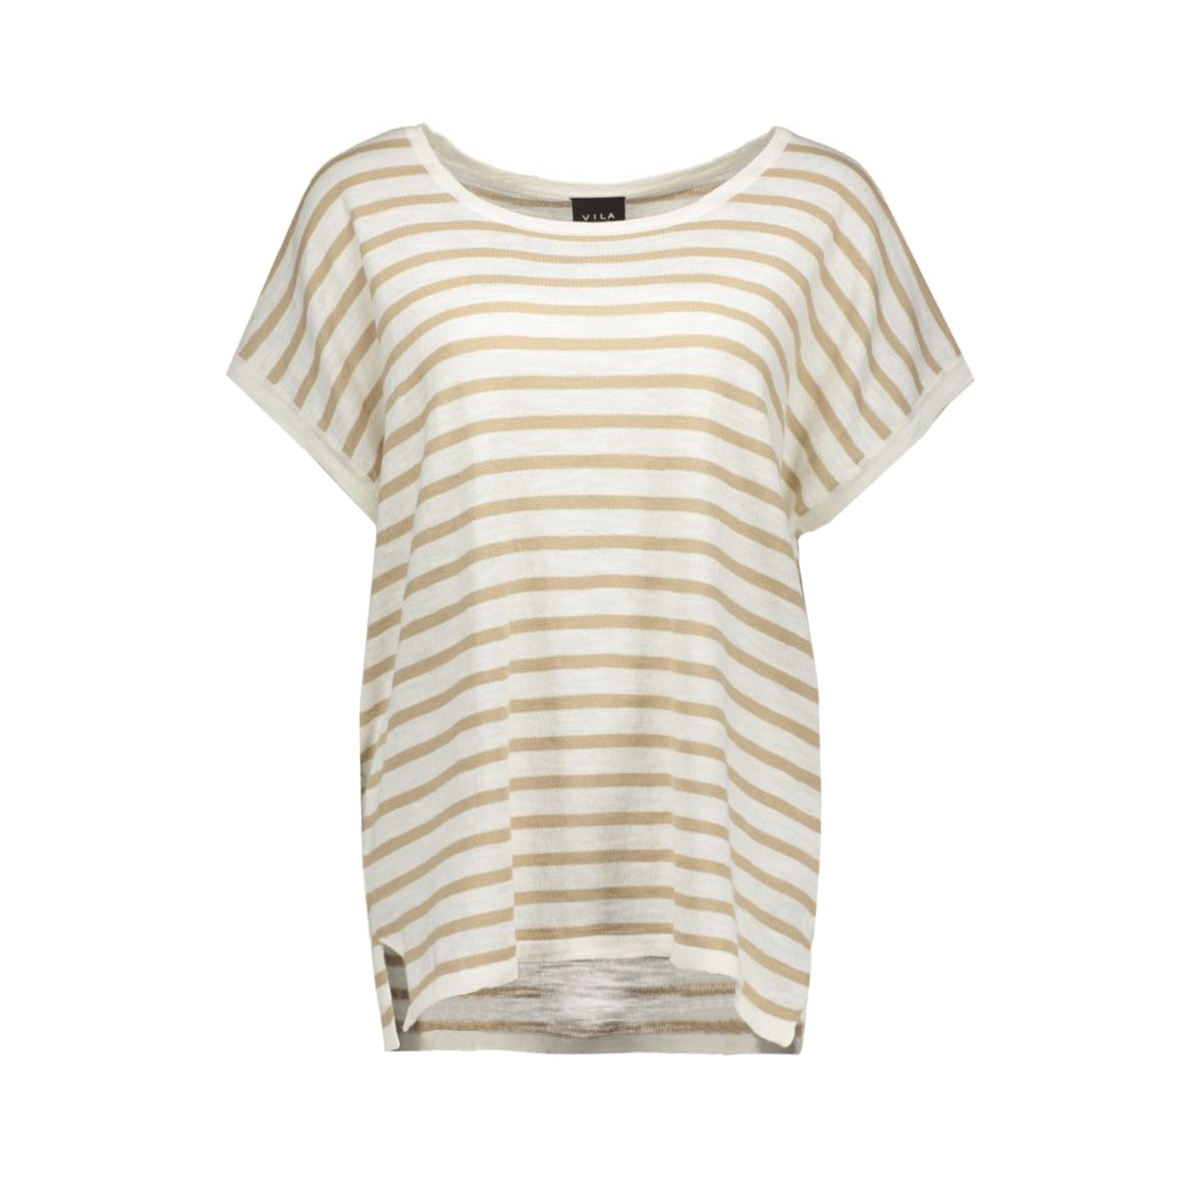 vistarly stripe s/s knit top 14035483 vila t-shirt soft camel